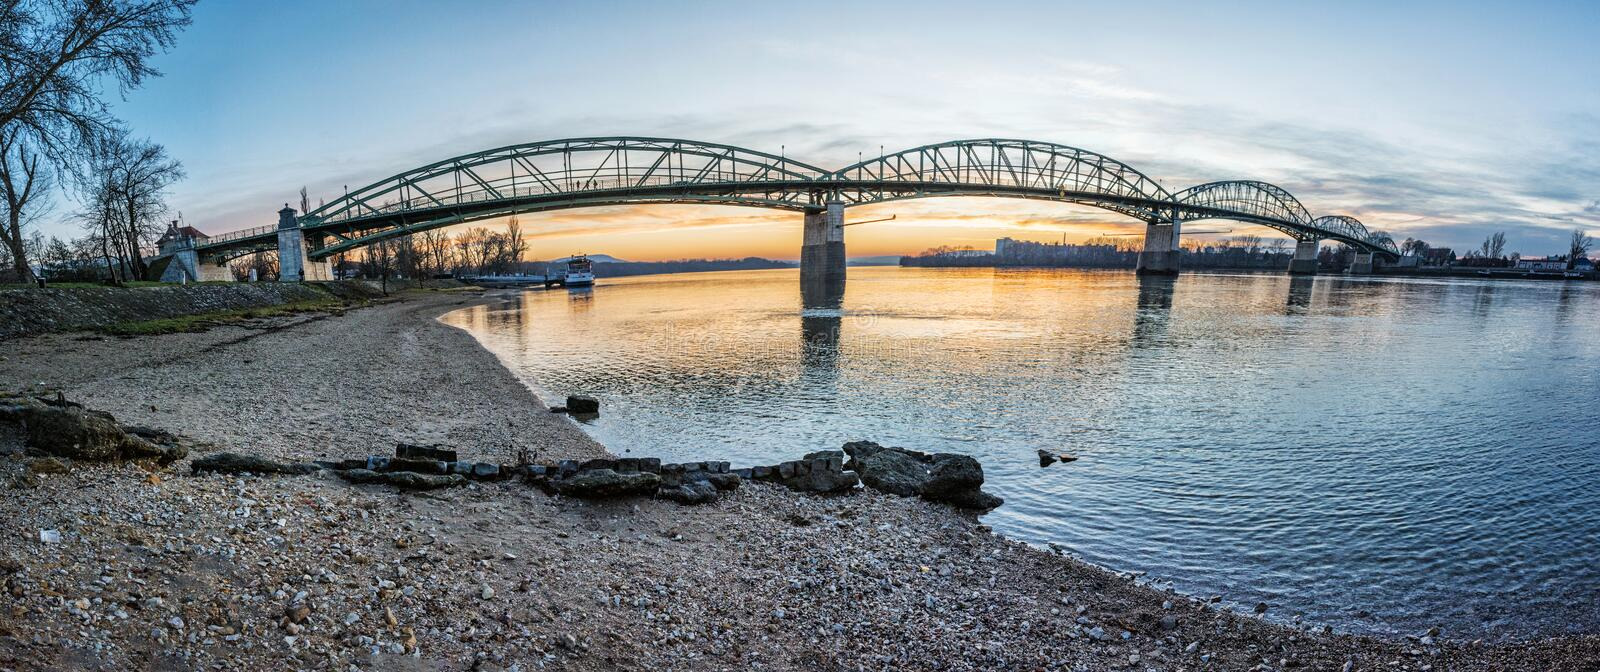 Maria Valeria bridge from Esztergom to Sturovo, sunset scene royalty free stock photo